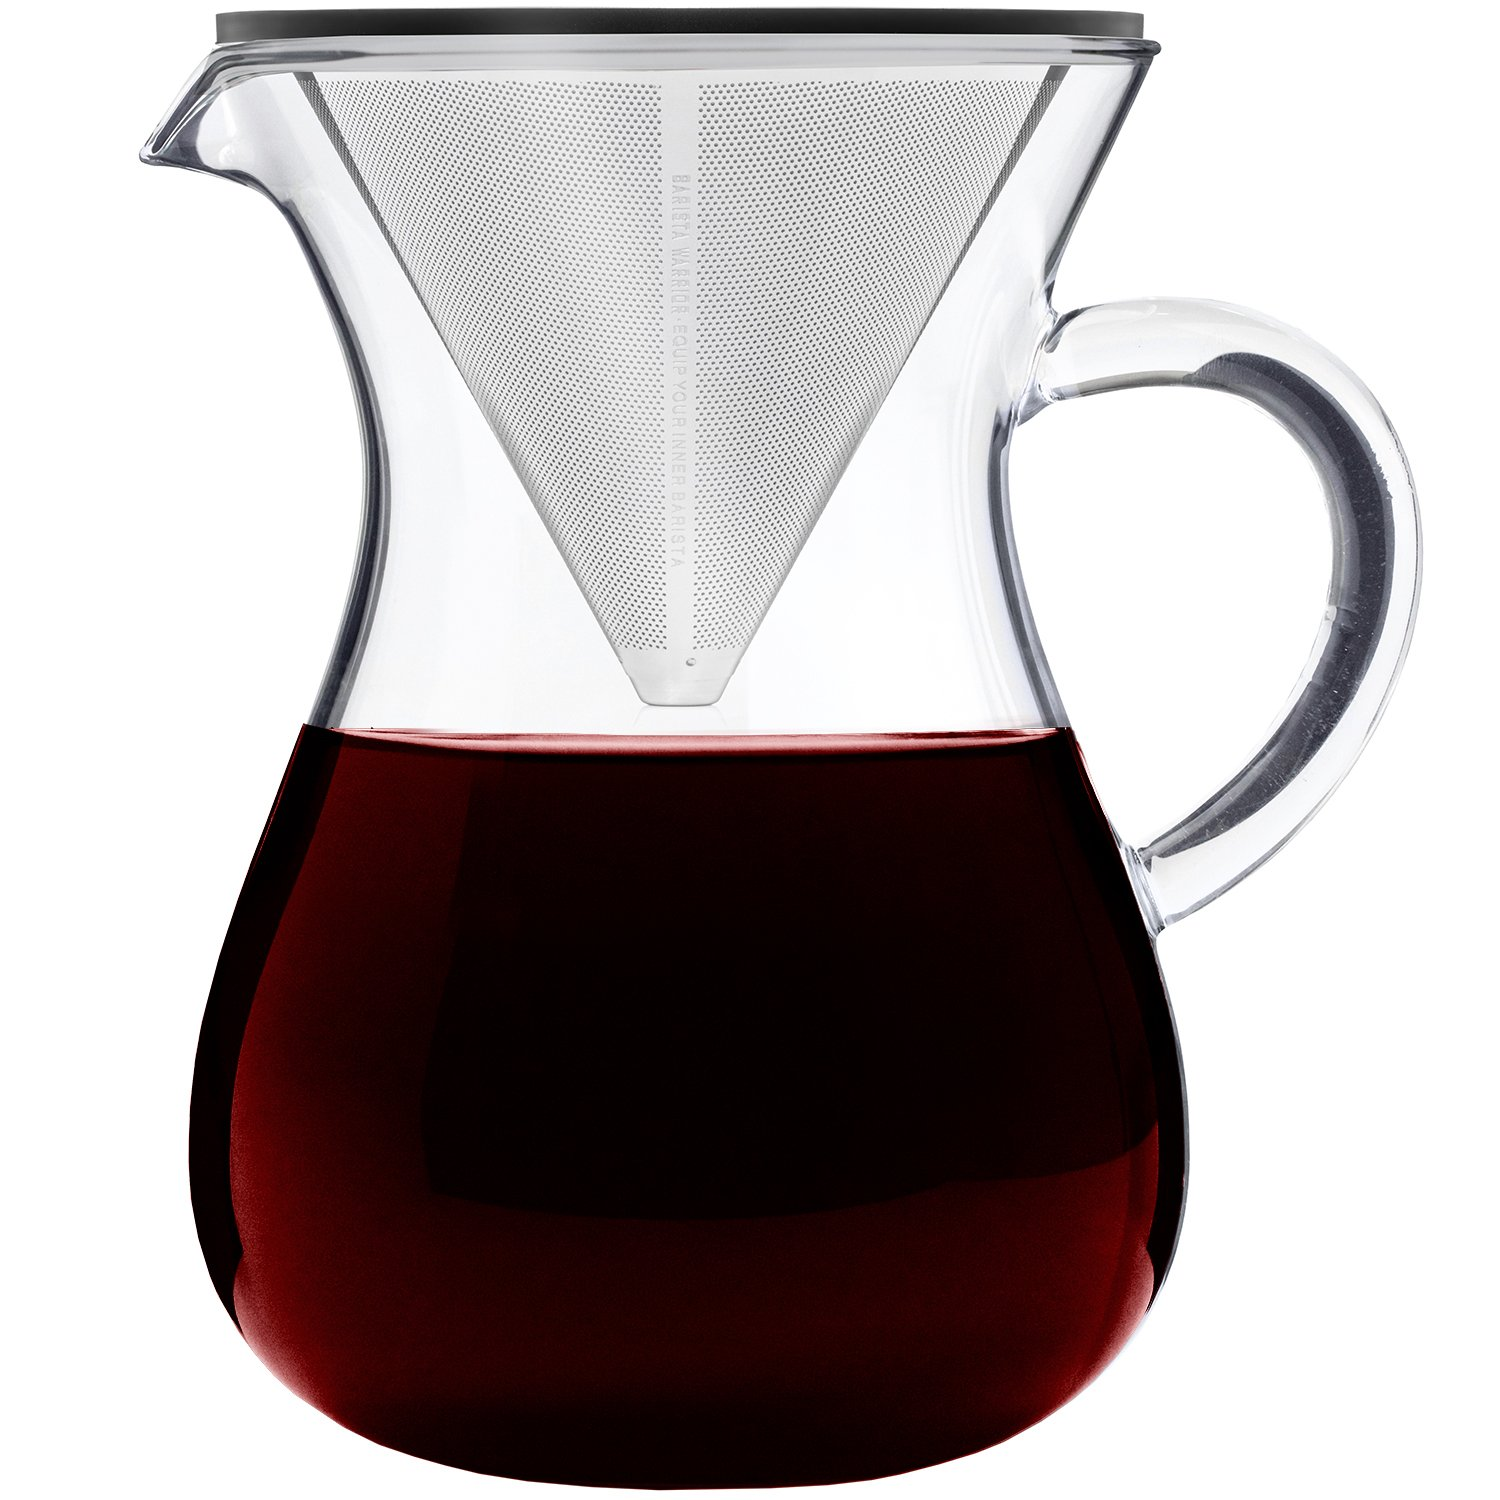 Pour Over Coffee Maker Set - 5-Cup (27oz | 800ml) - Large Drip Coffee Maker - Glass Carafe with Permanent Filter